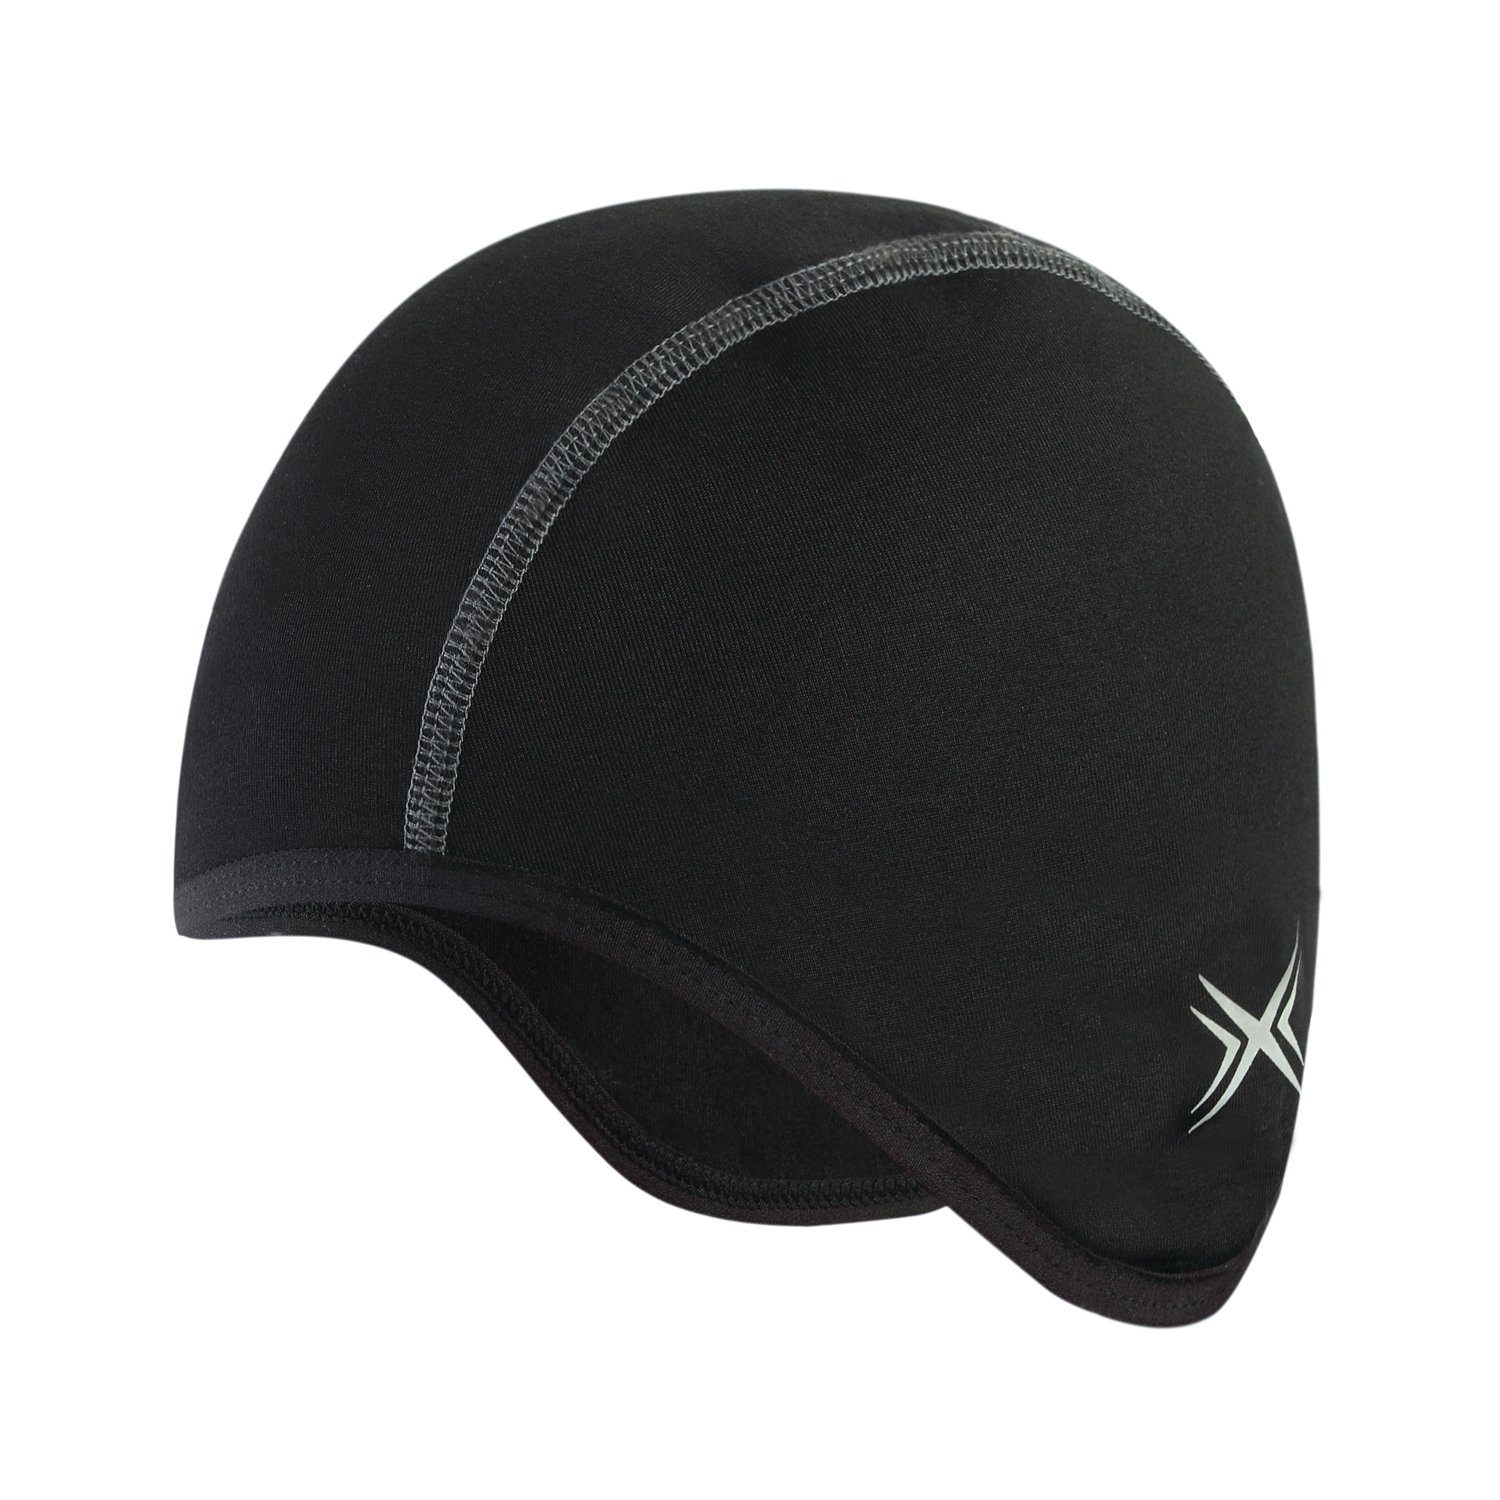 BALEAF Skull Cap Cycling Running Beanie Thermal Helmet Liner product image